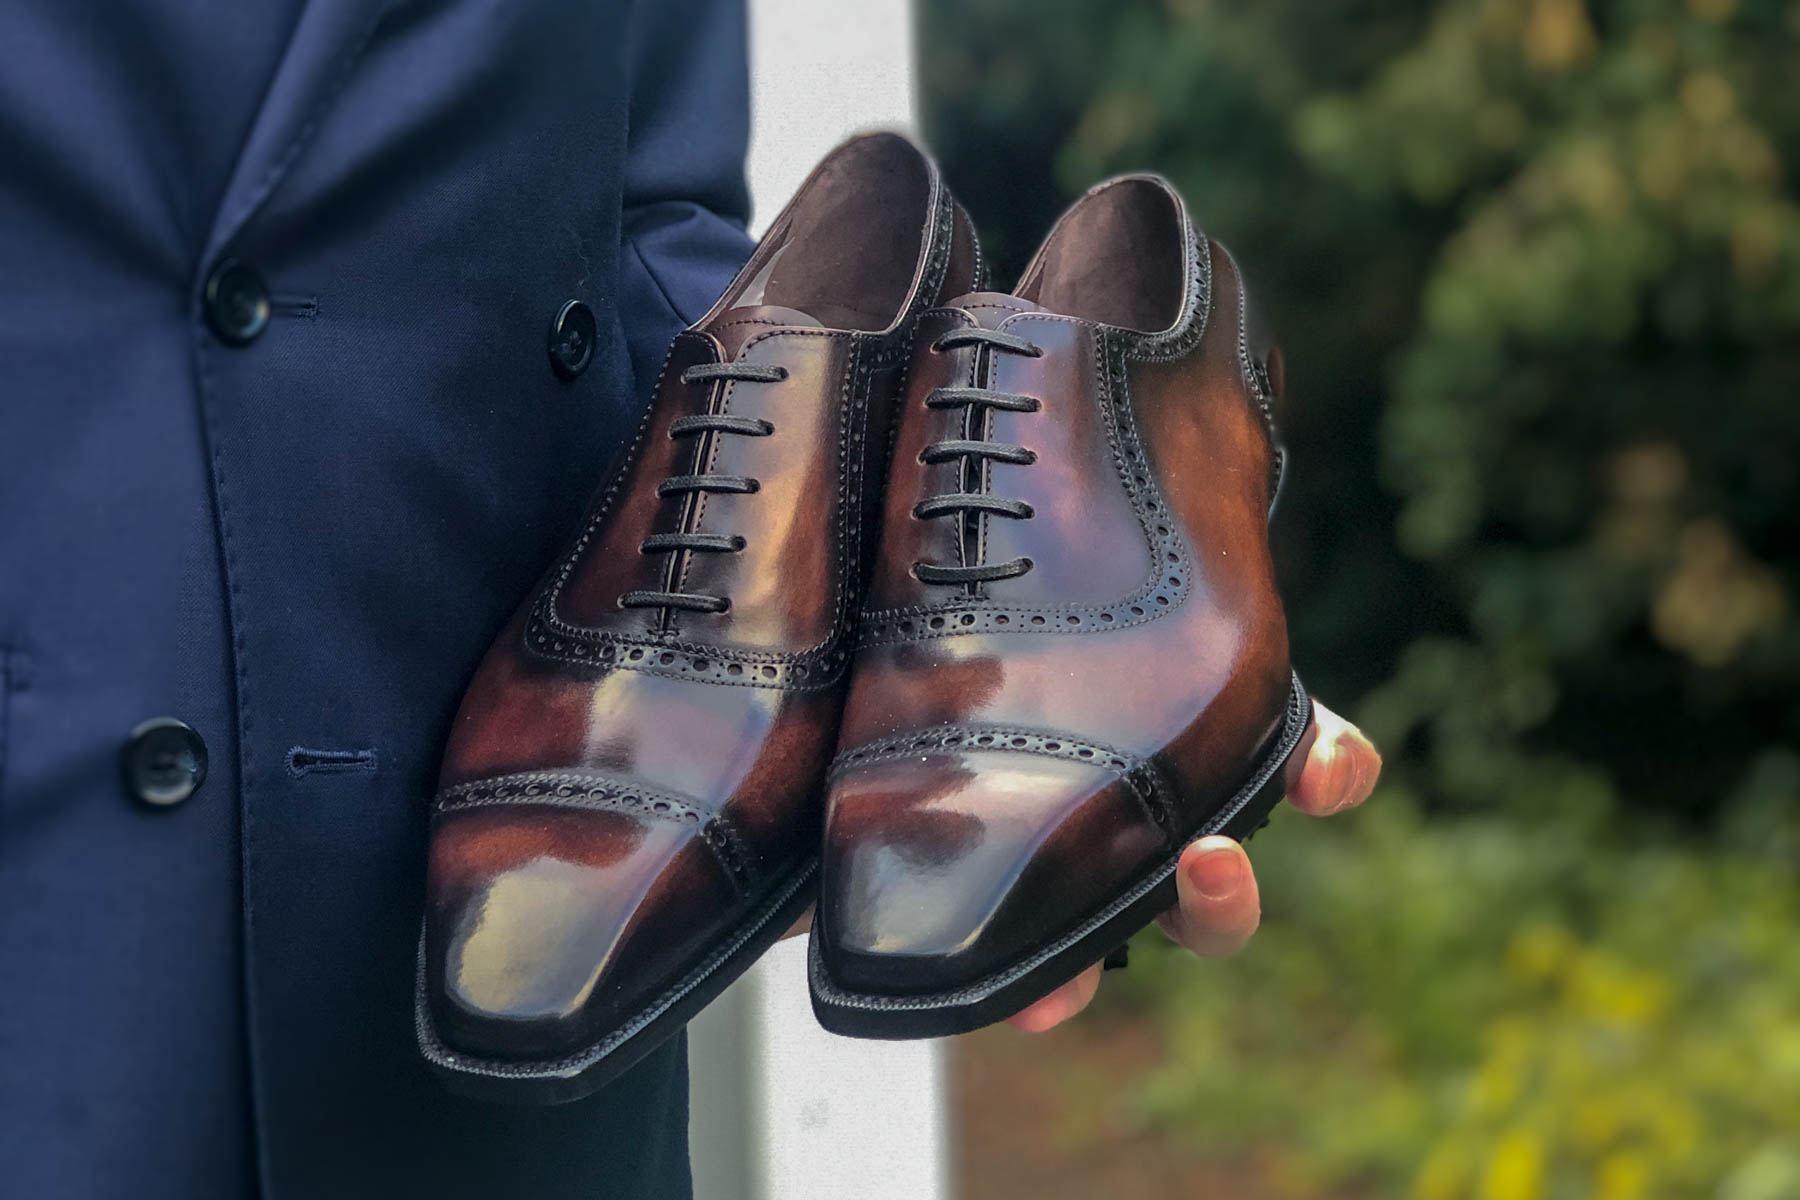 The Noble Shoe Handcrafted Adelaide Oxford